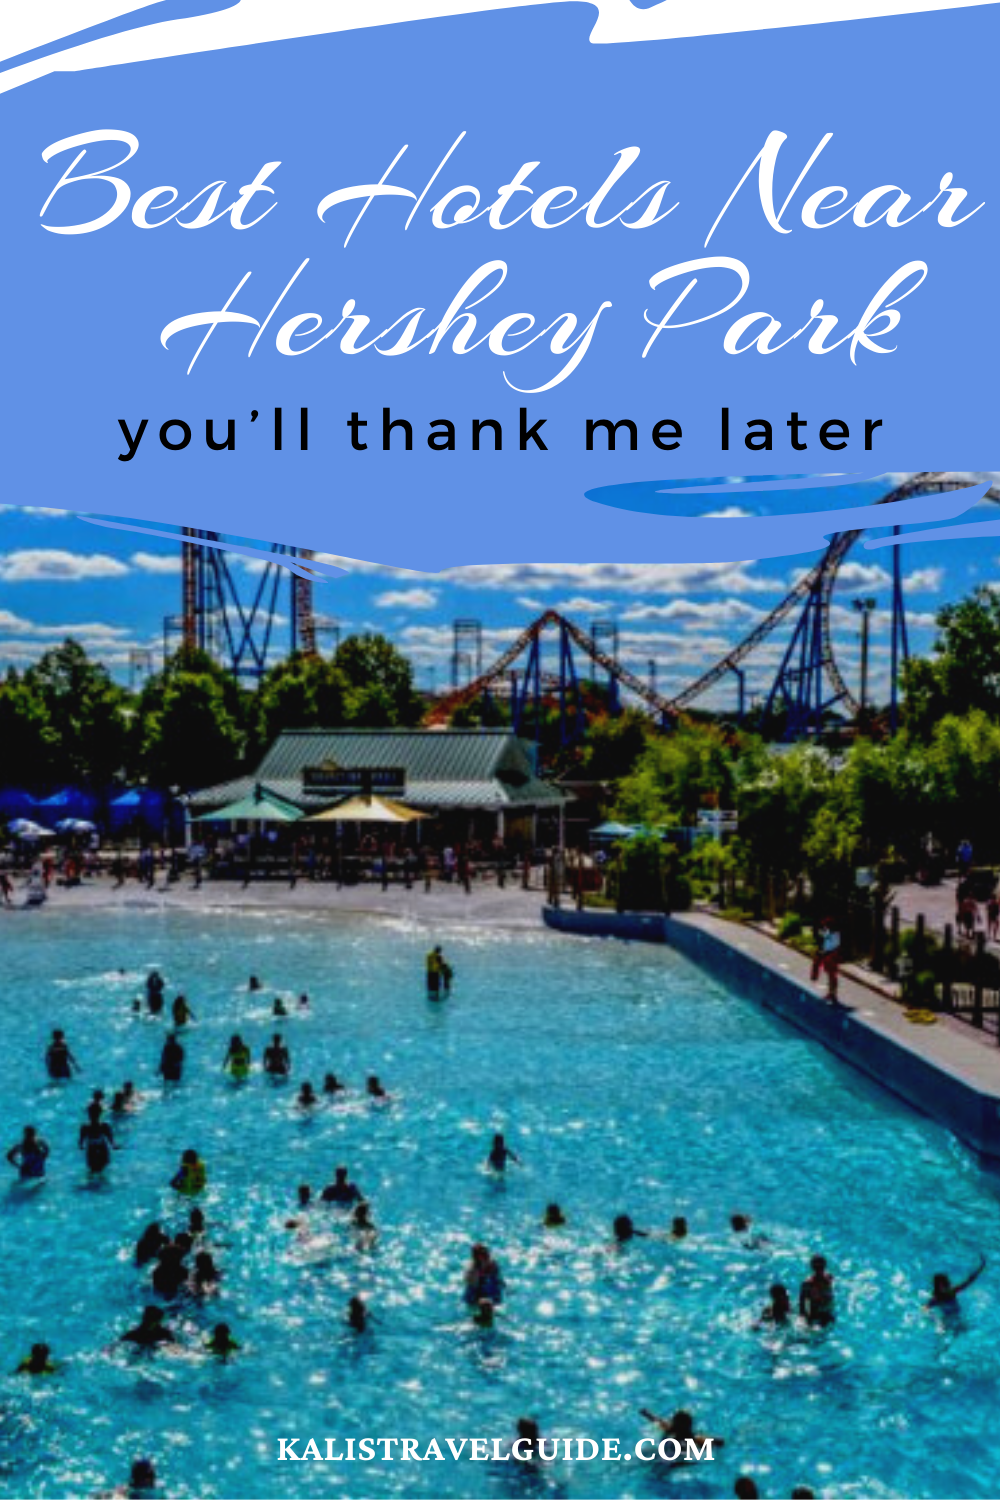 Get More Out Of Your Stay Best Hotels Near Hershey Park Family Travel Destinations Usa Vacation Trips Travel Inspiration Destinations